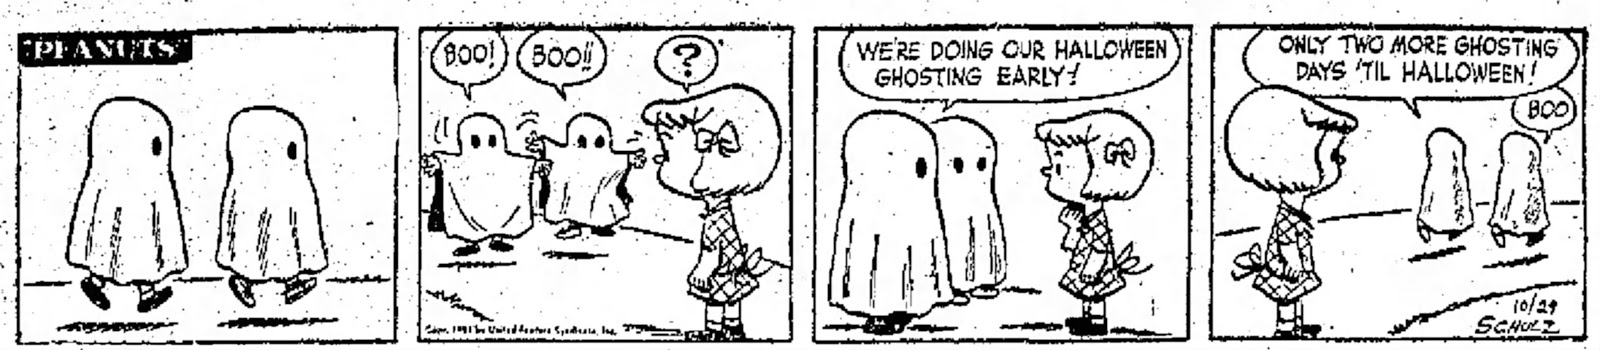 Great Pumpkin, Where Are You?: 1951: First Peanuts Halloween